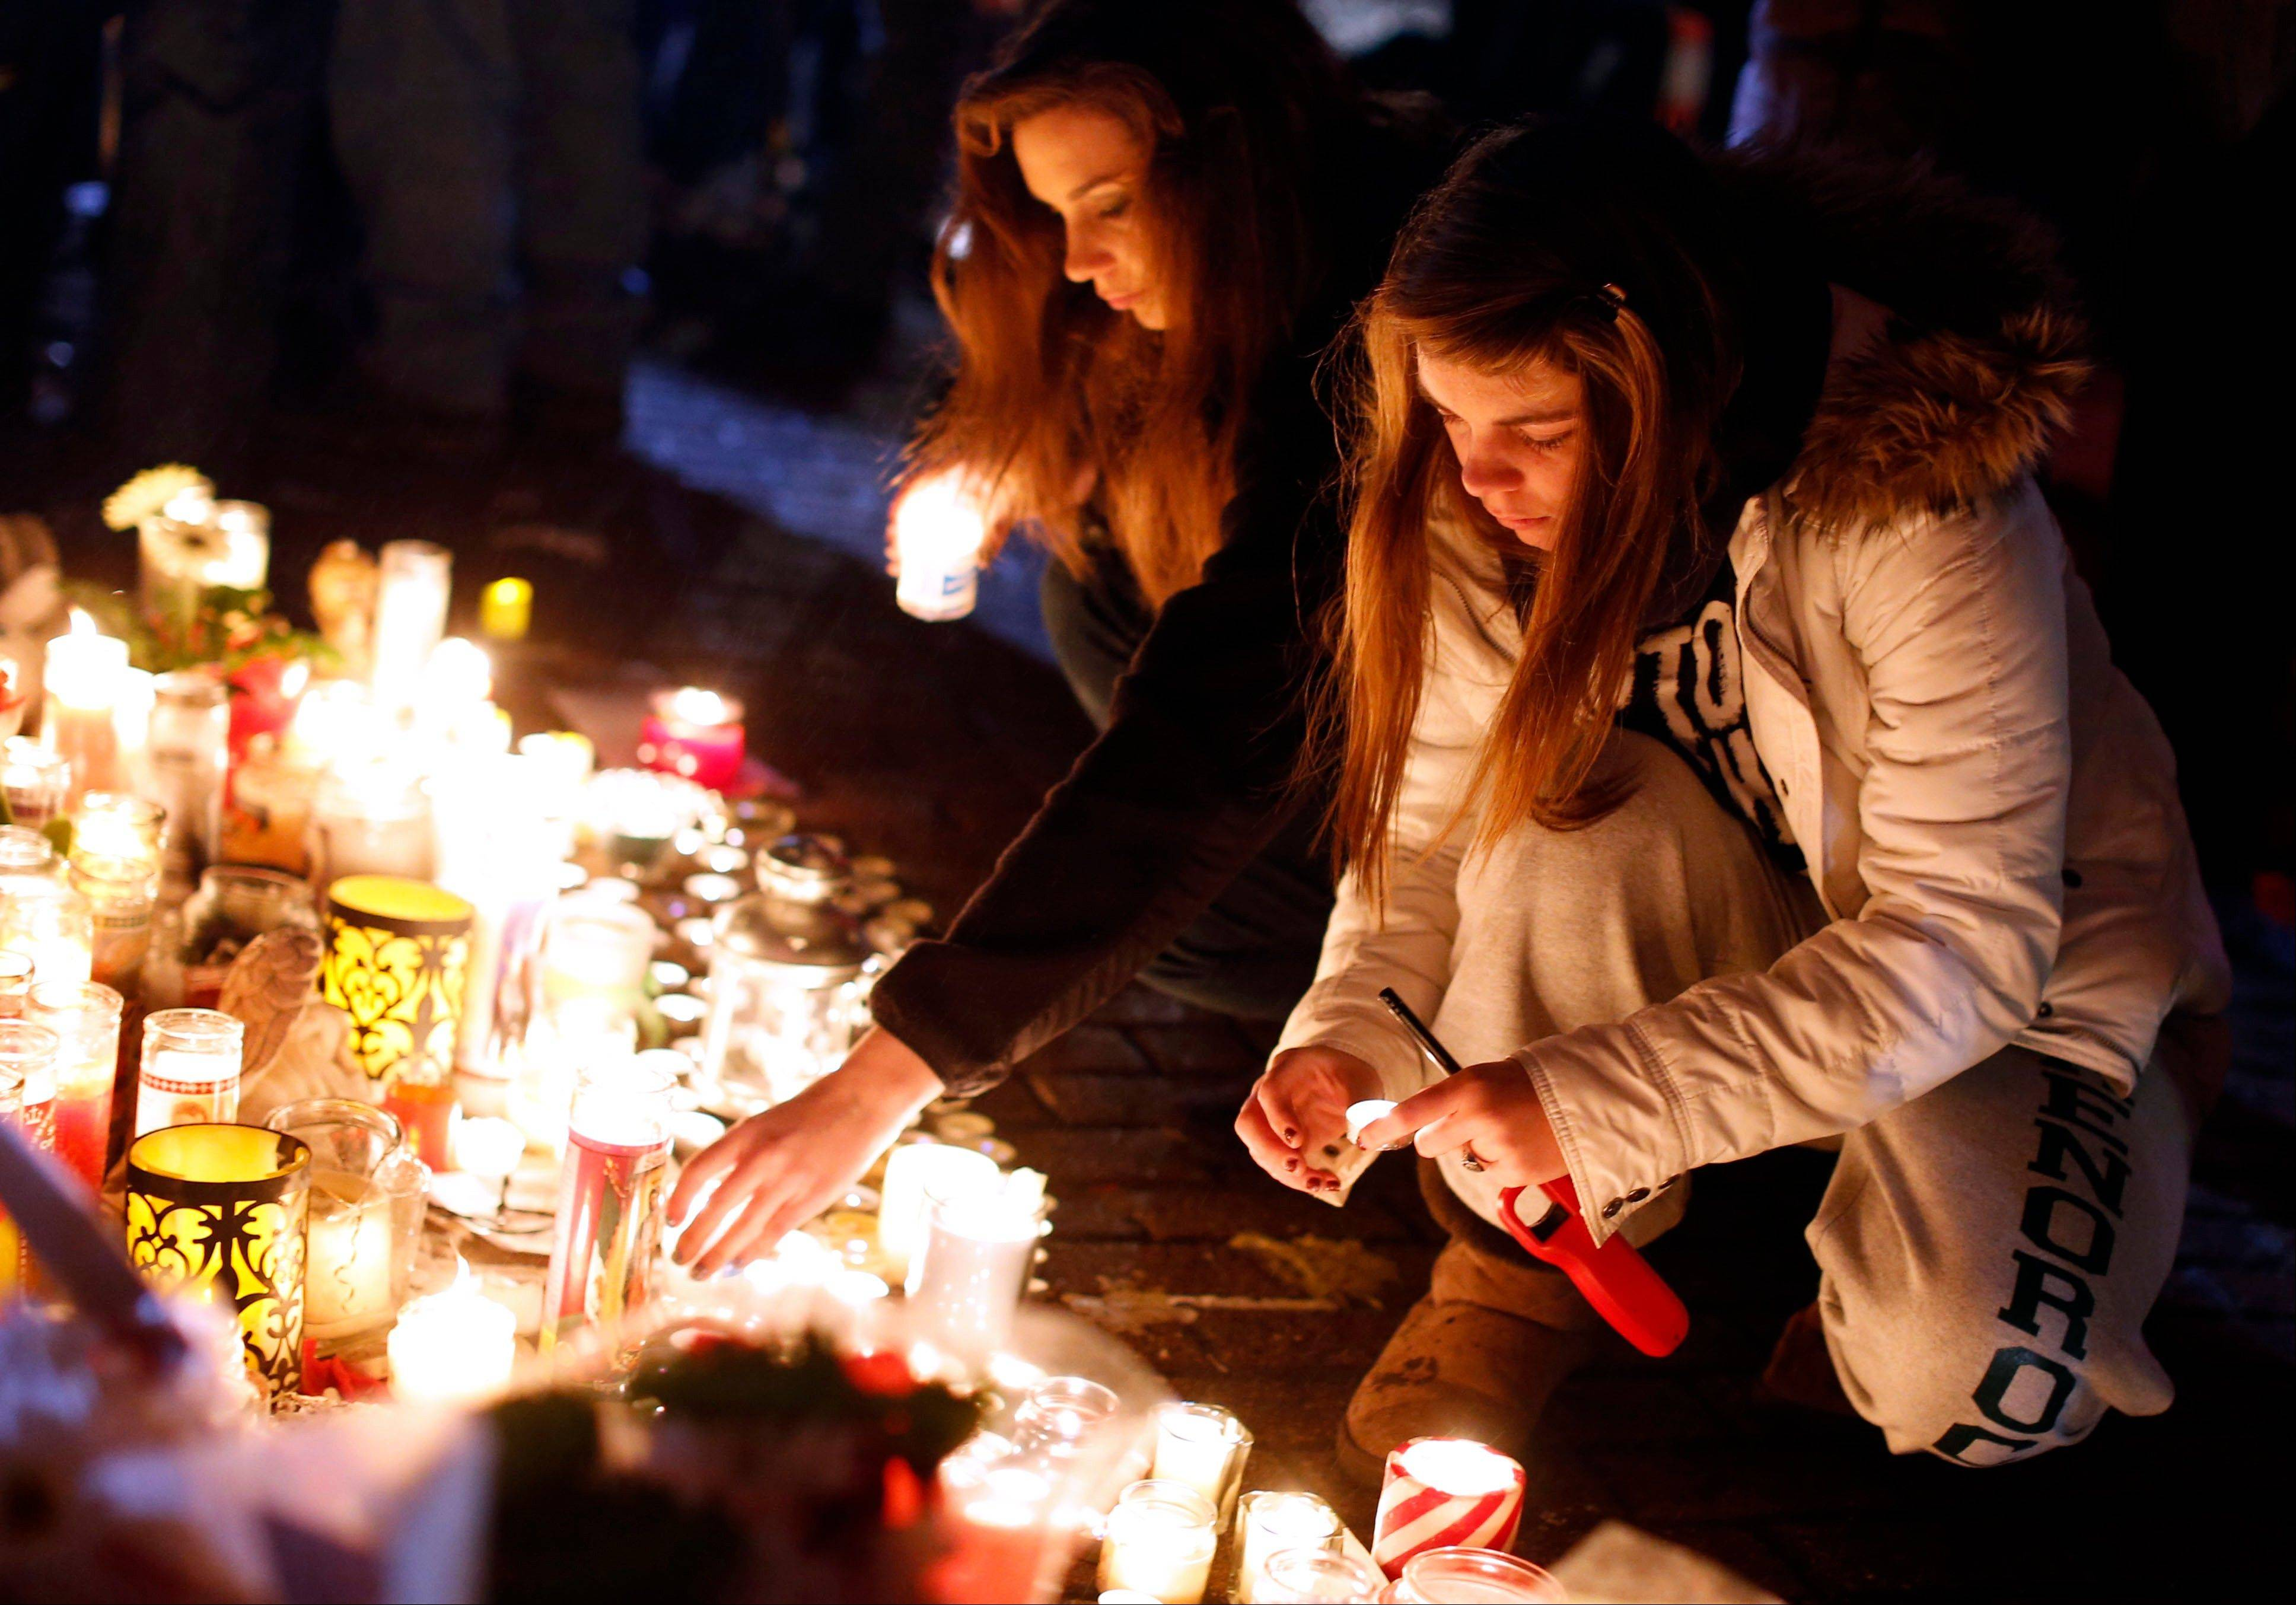 Visitors light candles at a memorial to shooting victims, Monday, Dec. 17, 2012, in Newtown, Conn. A gunman walked into Sandy Hook Elementary School in Newtown Friday and opened fire, killing 26 people, including 20 children.